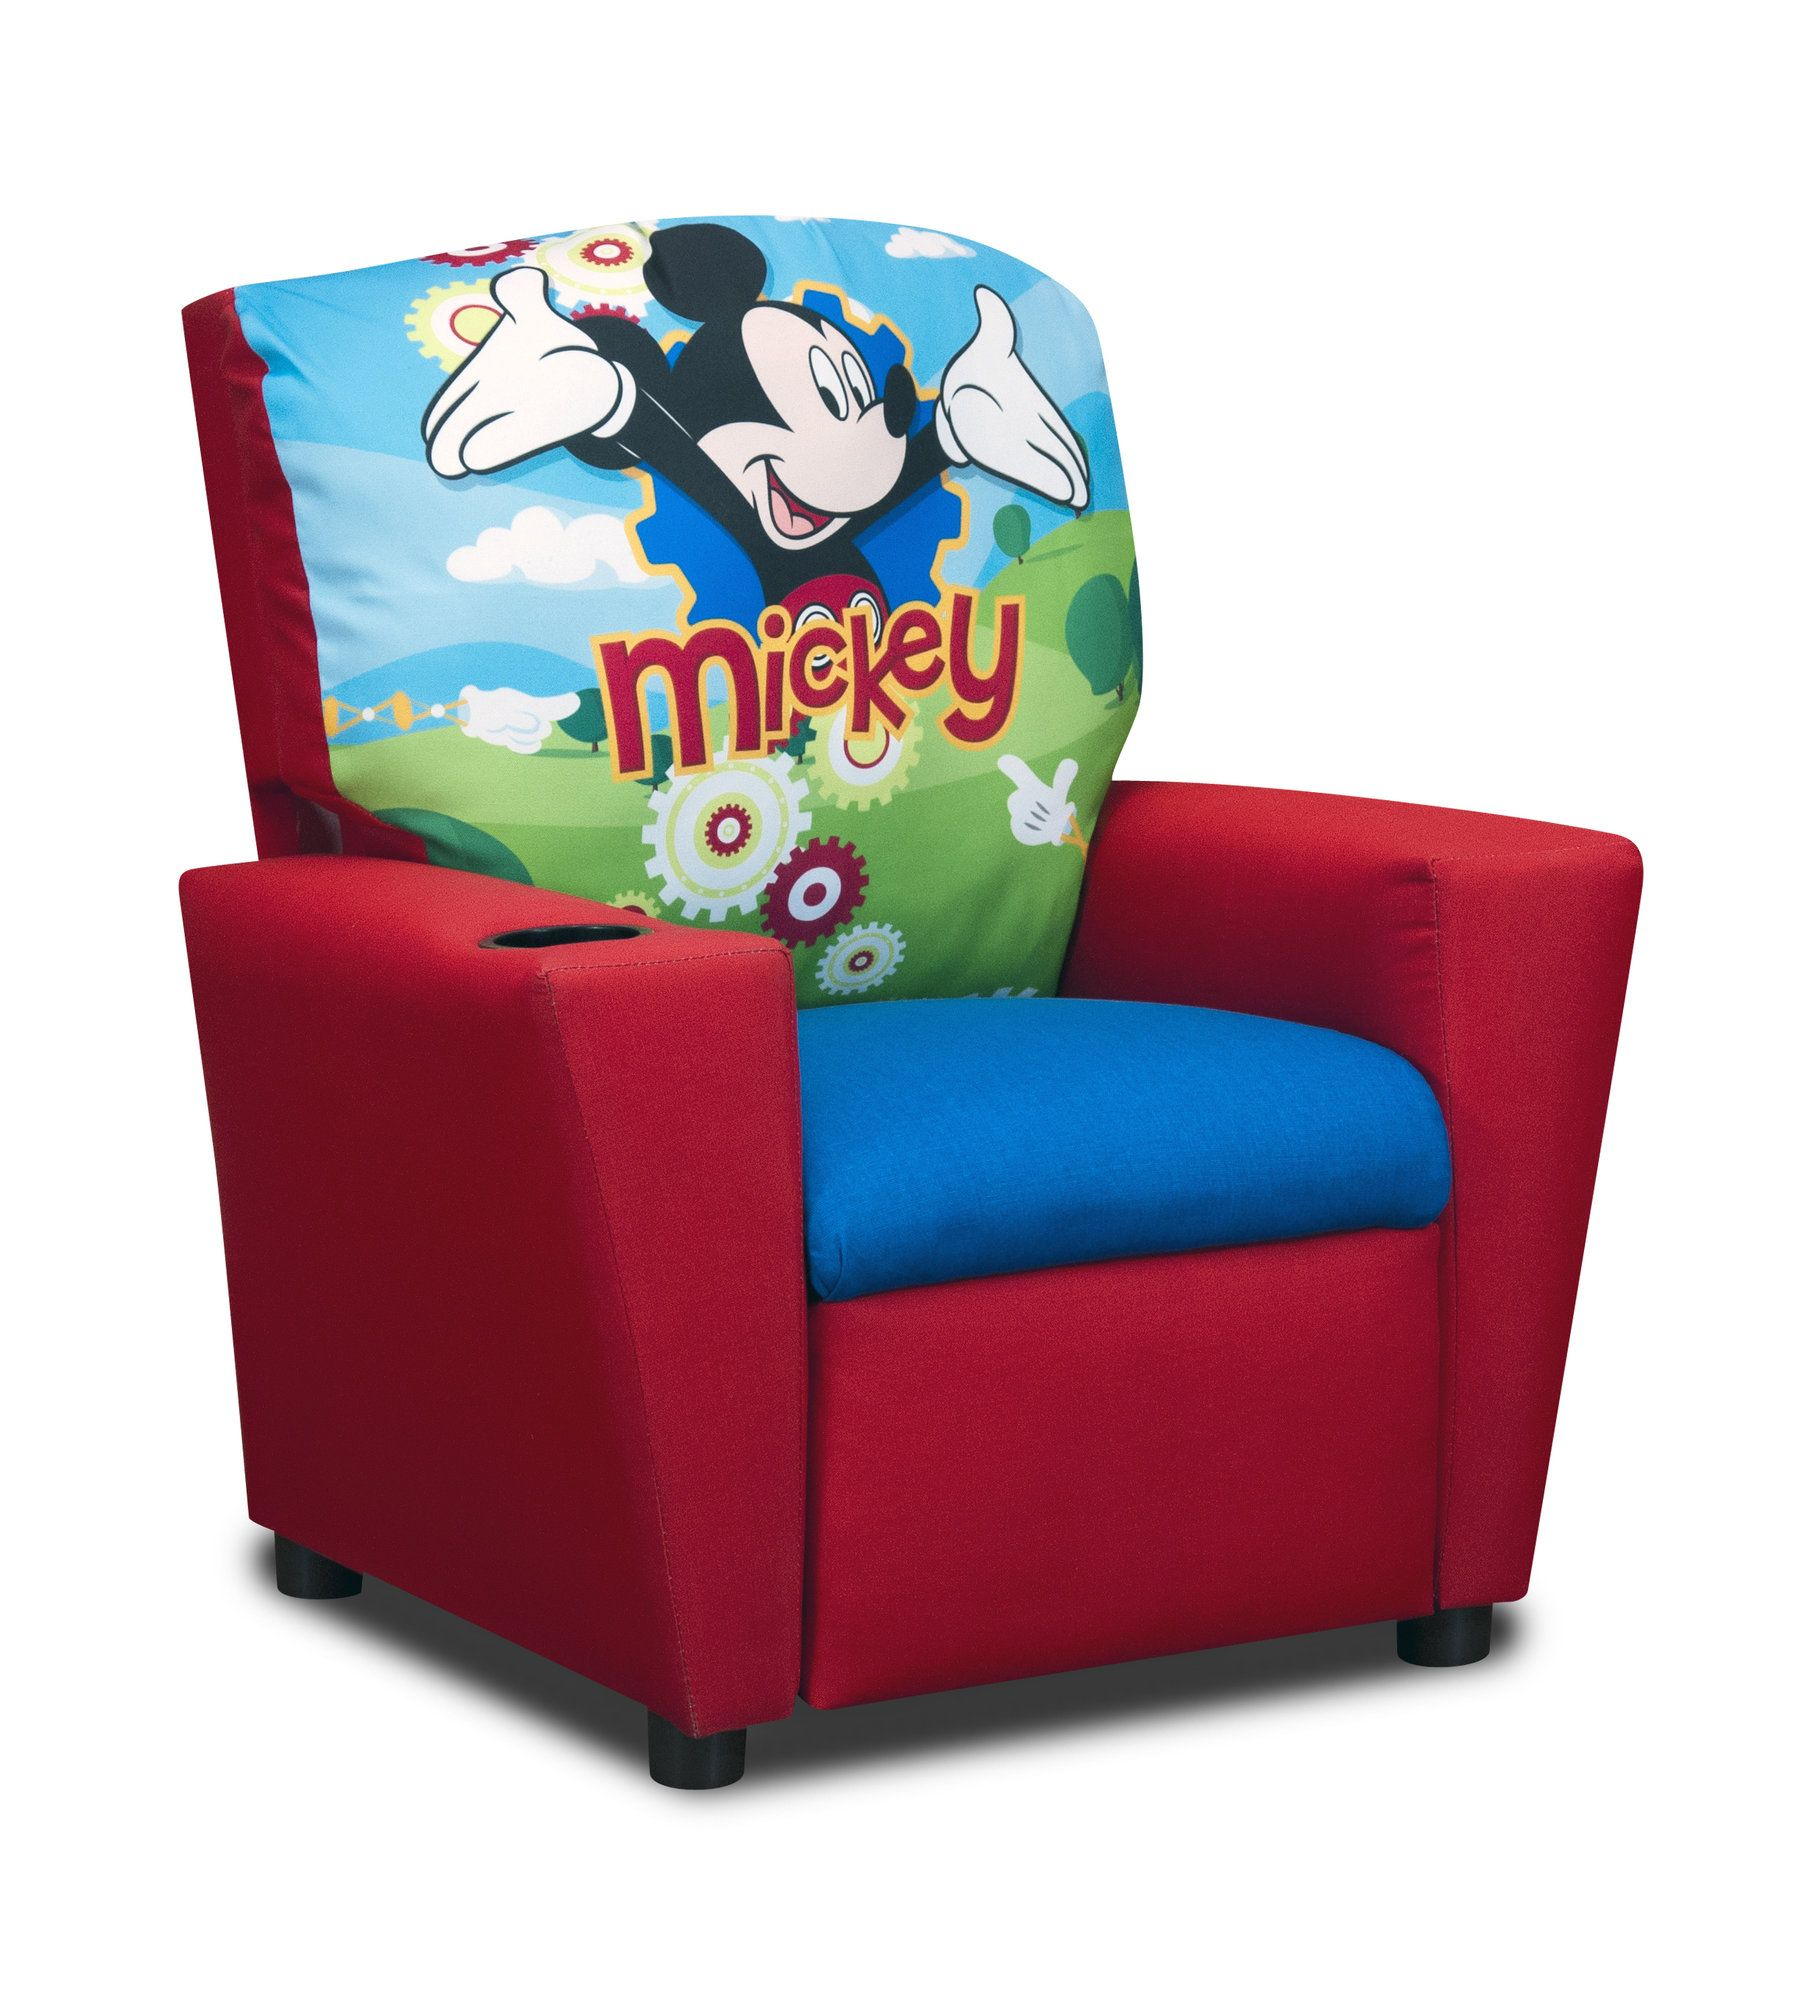 Minnie Mouse Recliner Chair Red Covers For Sale Disney S Mickey Clubhouse Kids Cotton With Cup Holder